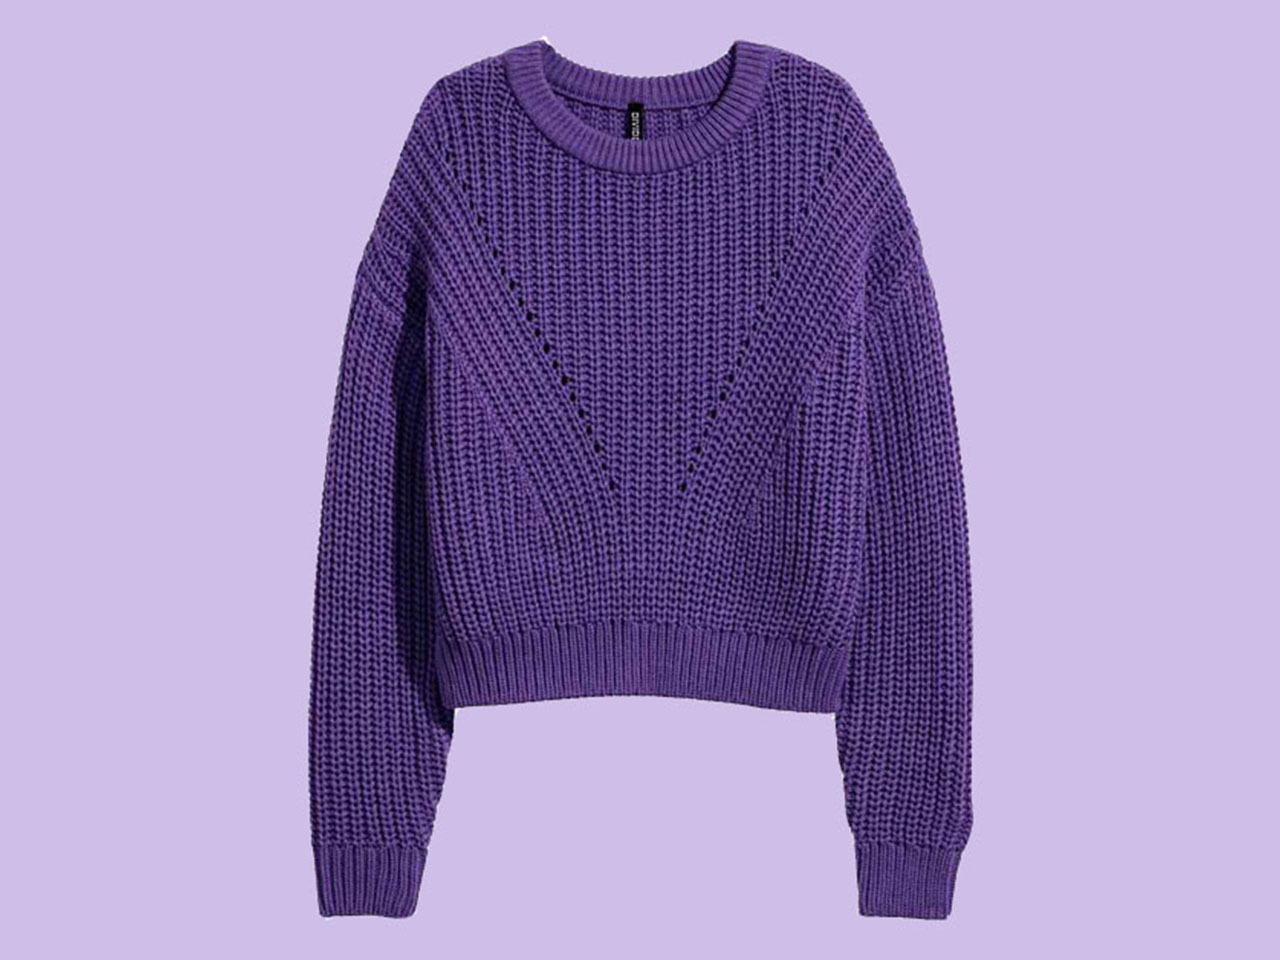 Purple sweater on a purple background for article on Pantone Colour of the Year 2018 Ultra Violet